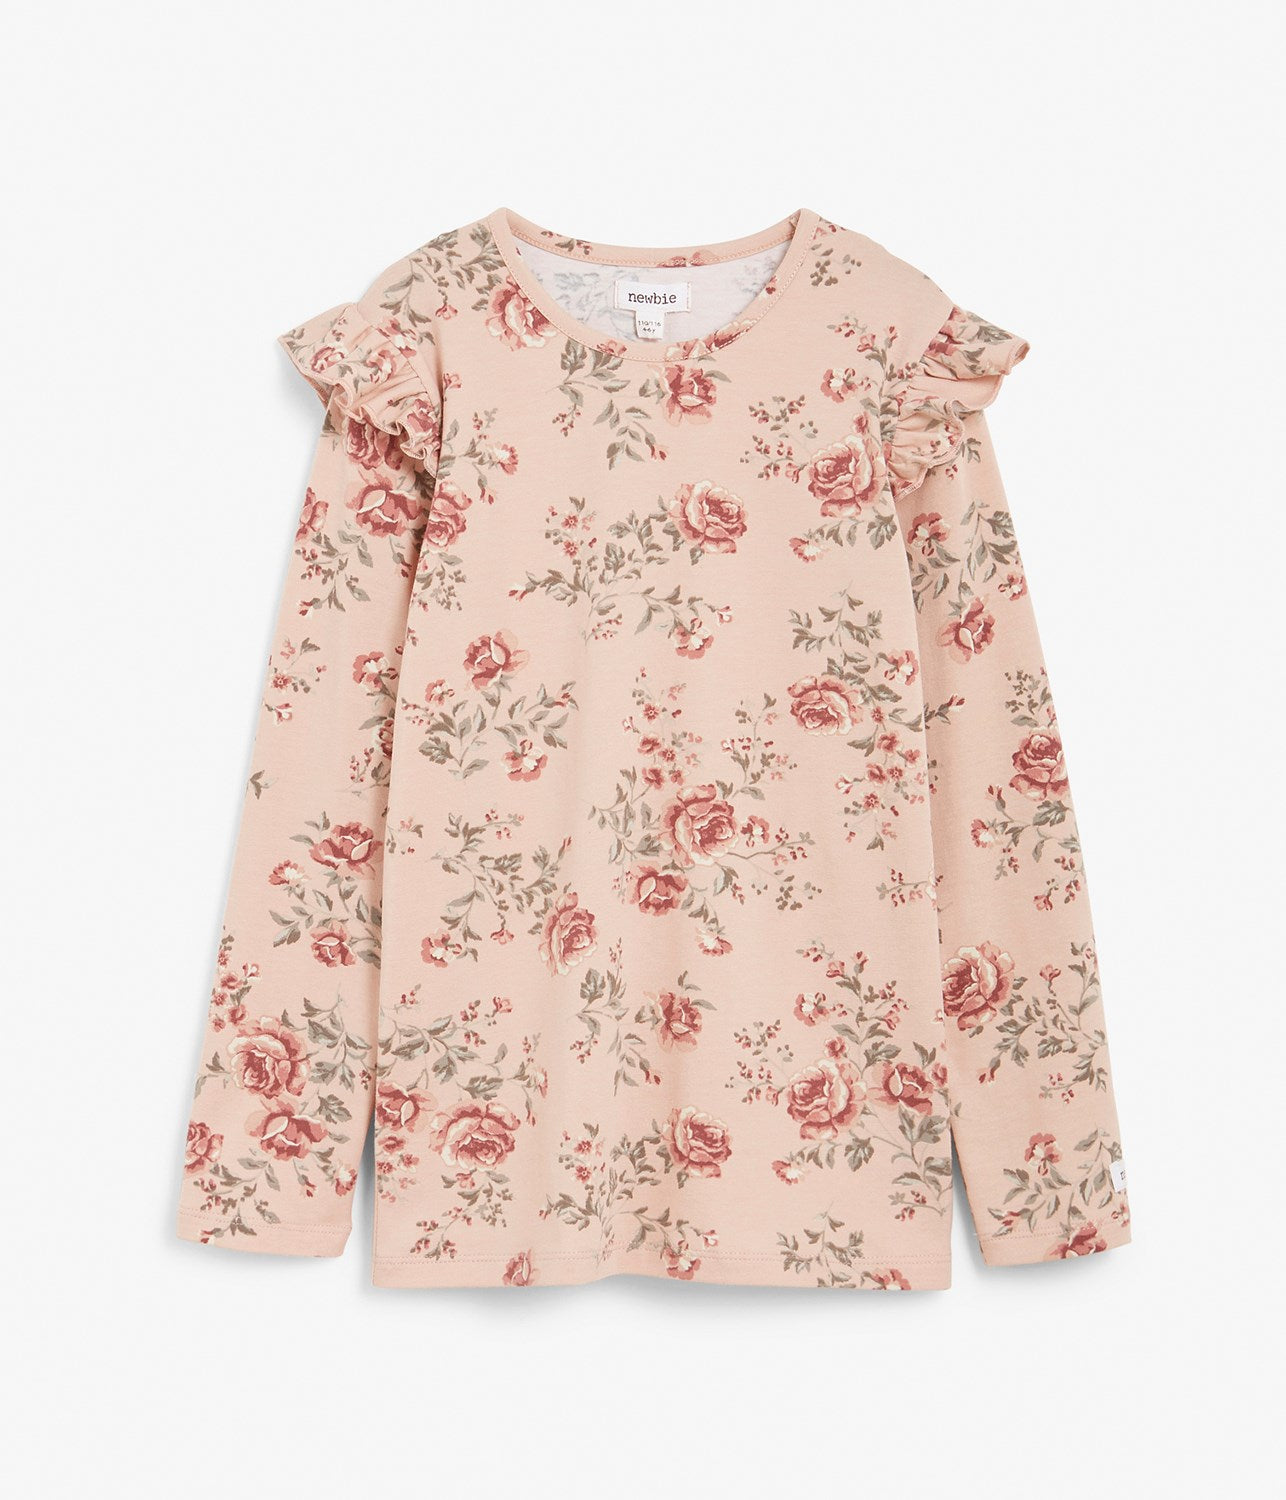 Kids pink floral print top with ruffles